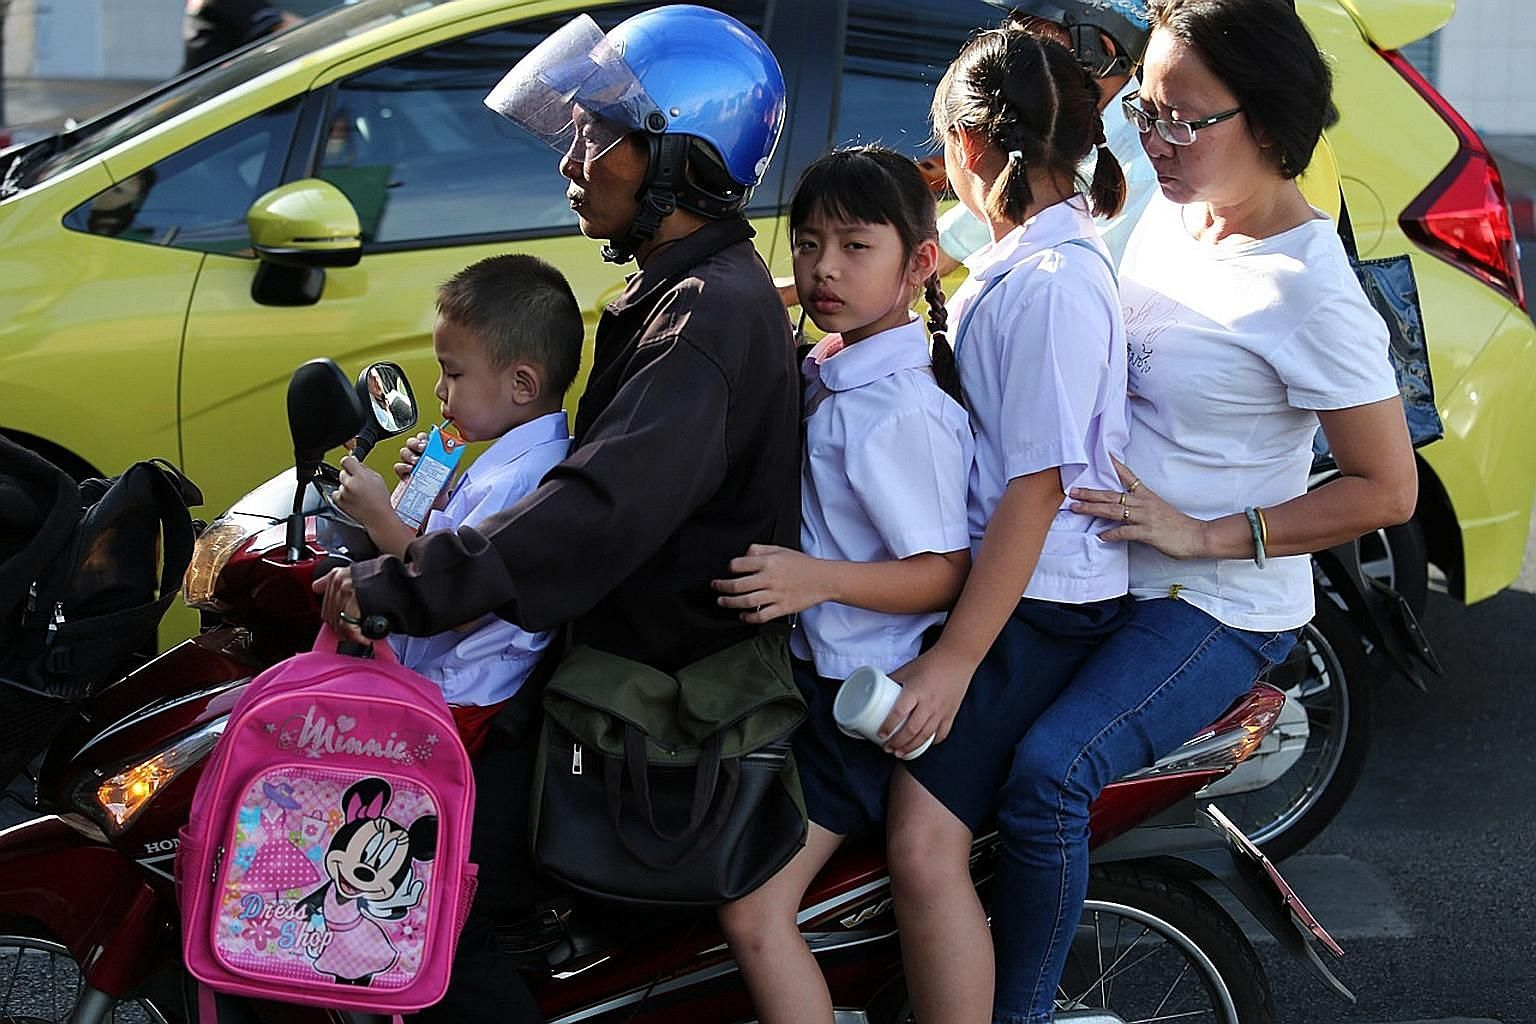 Unsafe motorbike-riding practices, including children and pillion riders not wearing helmets, are said to be a common sight in Thailand, especially in the provinces. A 2015 study reported that most motorbike deaths were due to fatal head injuries amo